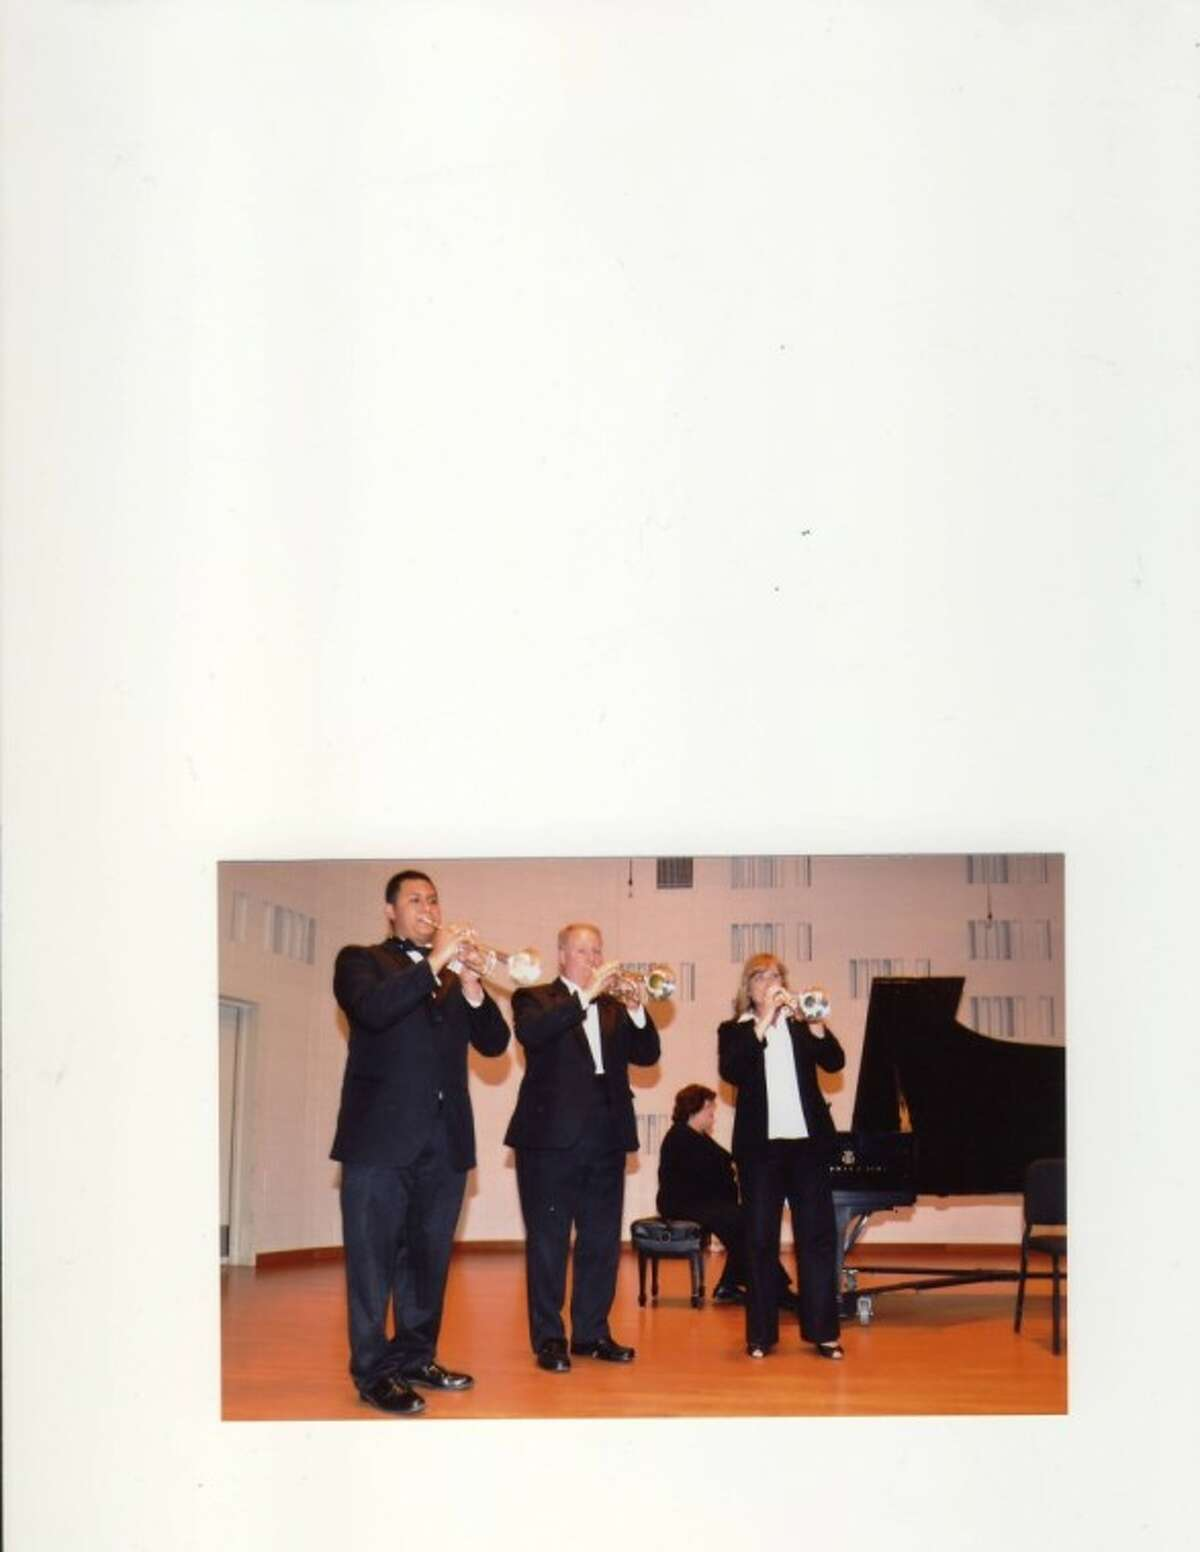 Pictured, from left, are Gumaro Gomez (trumpet), Guinn Pitts (trumpet), Kathy Mangum (piano) and Rhonda Pitts (trumpet).